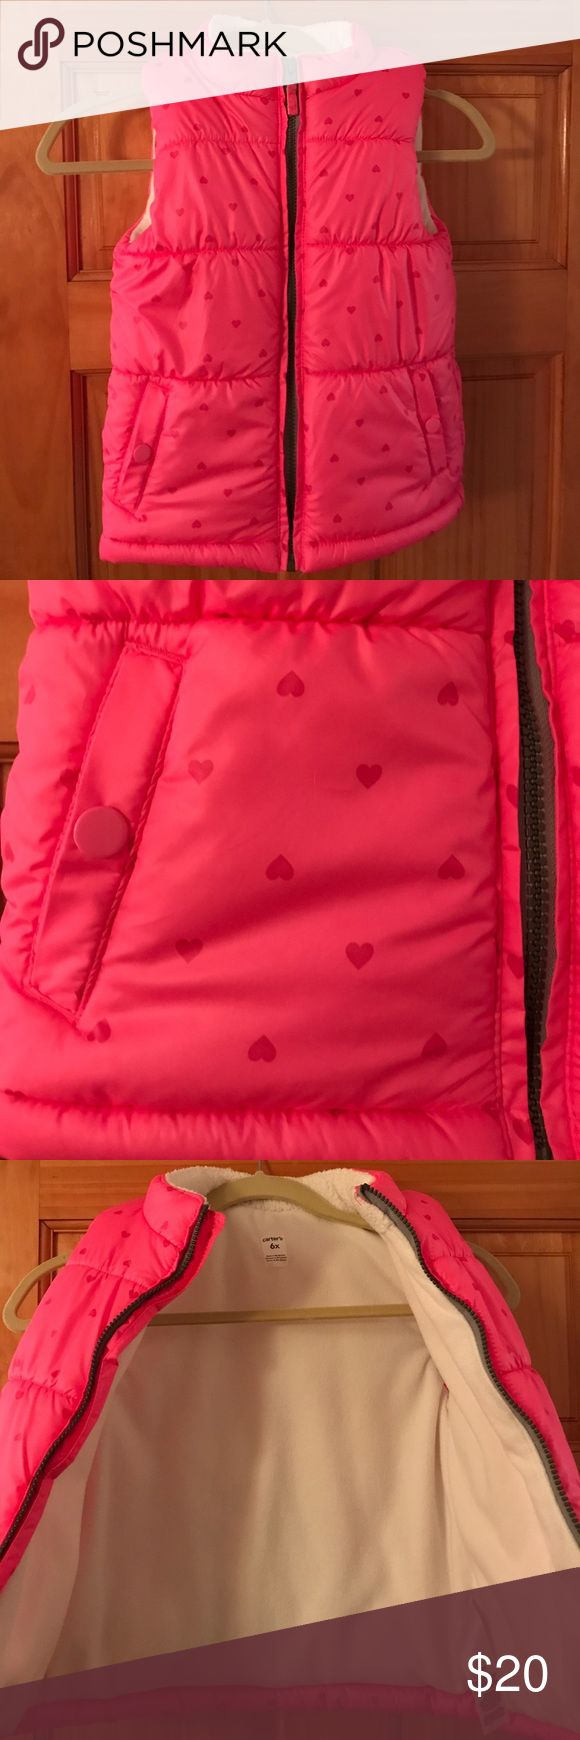 Carter's Girls Puffer Vest Hardly worn Near perfect condition!! Size 6x. Carter's Jackets & Coats Vests